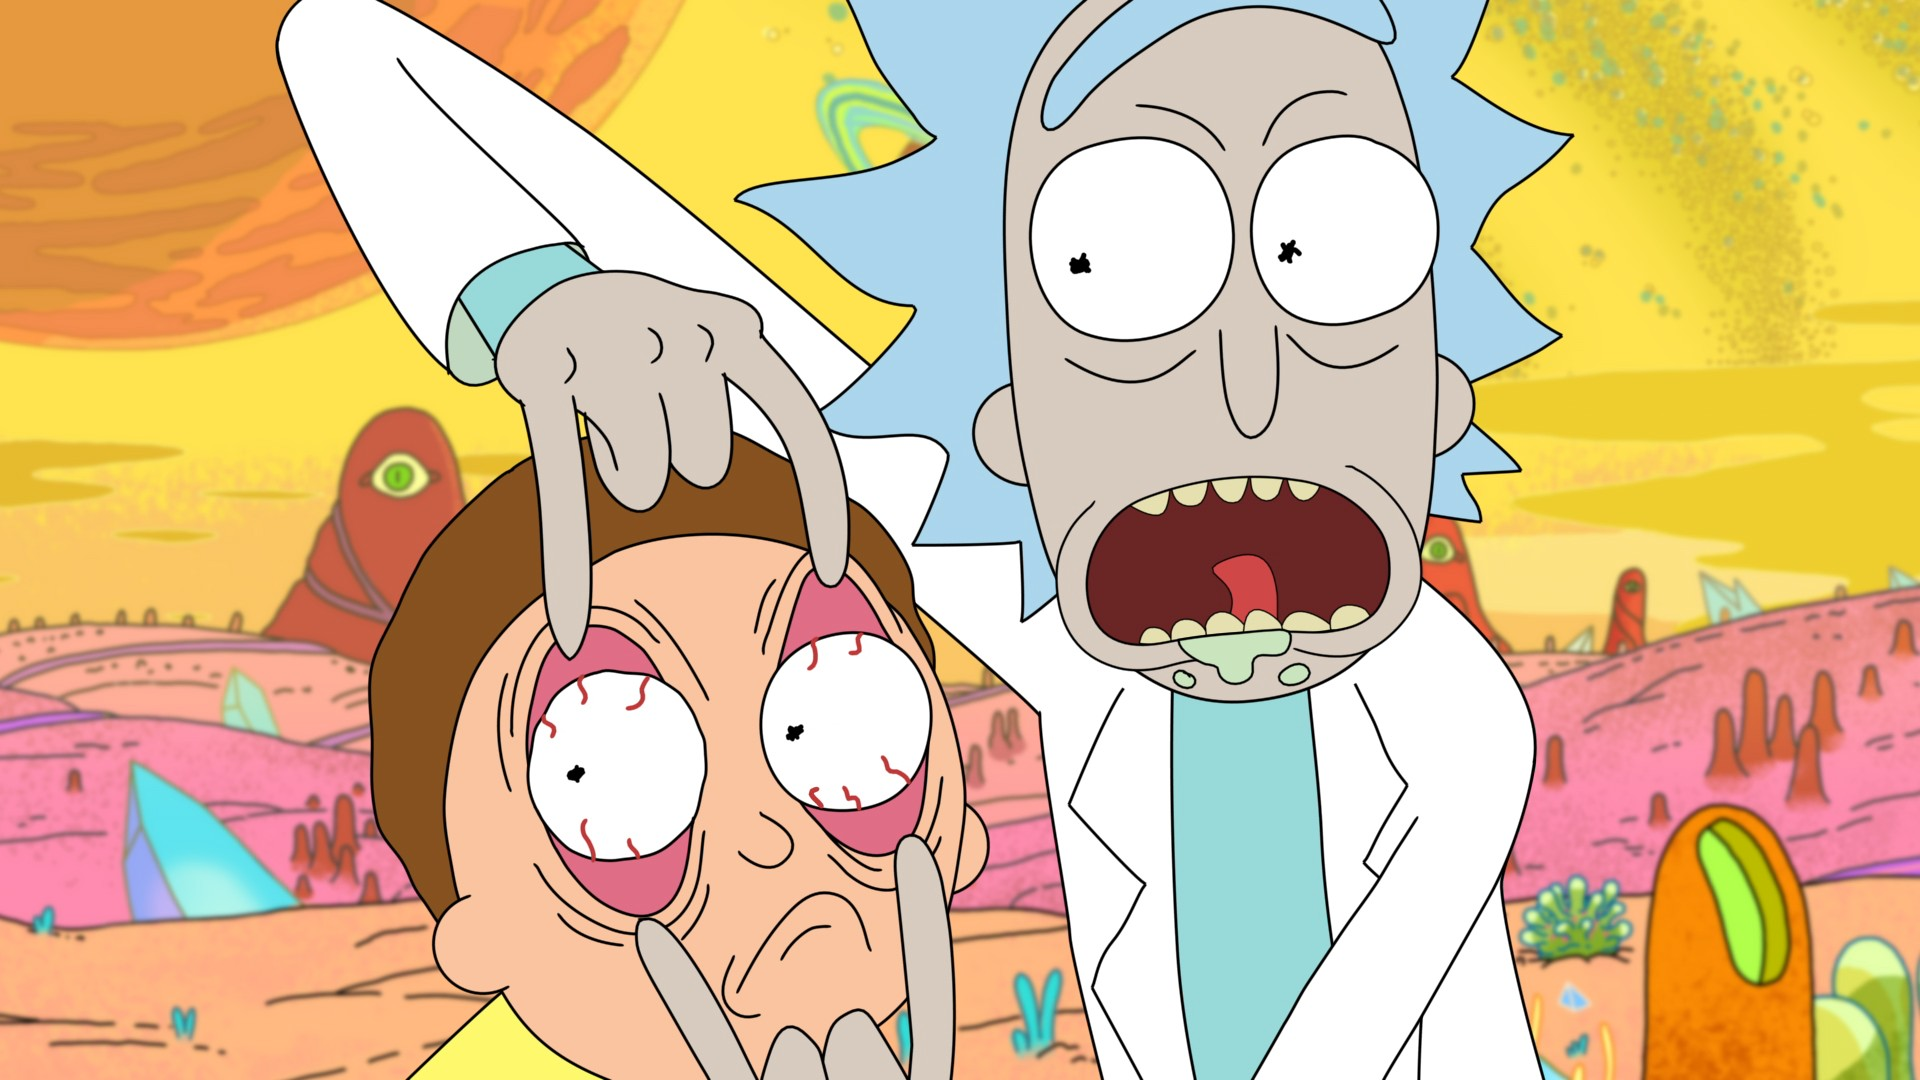 rick and morty wallpaper 1080p download free stunning high